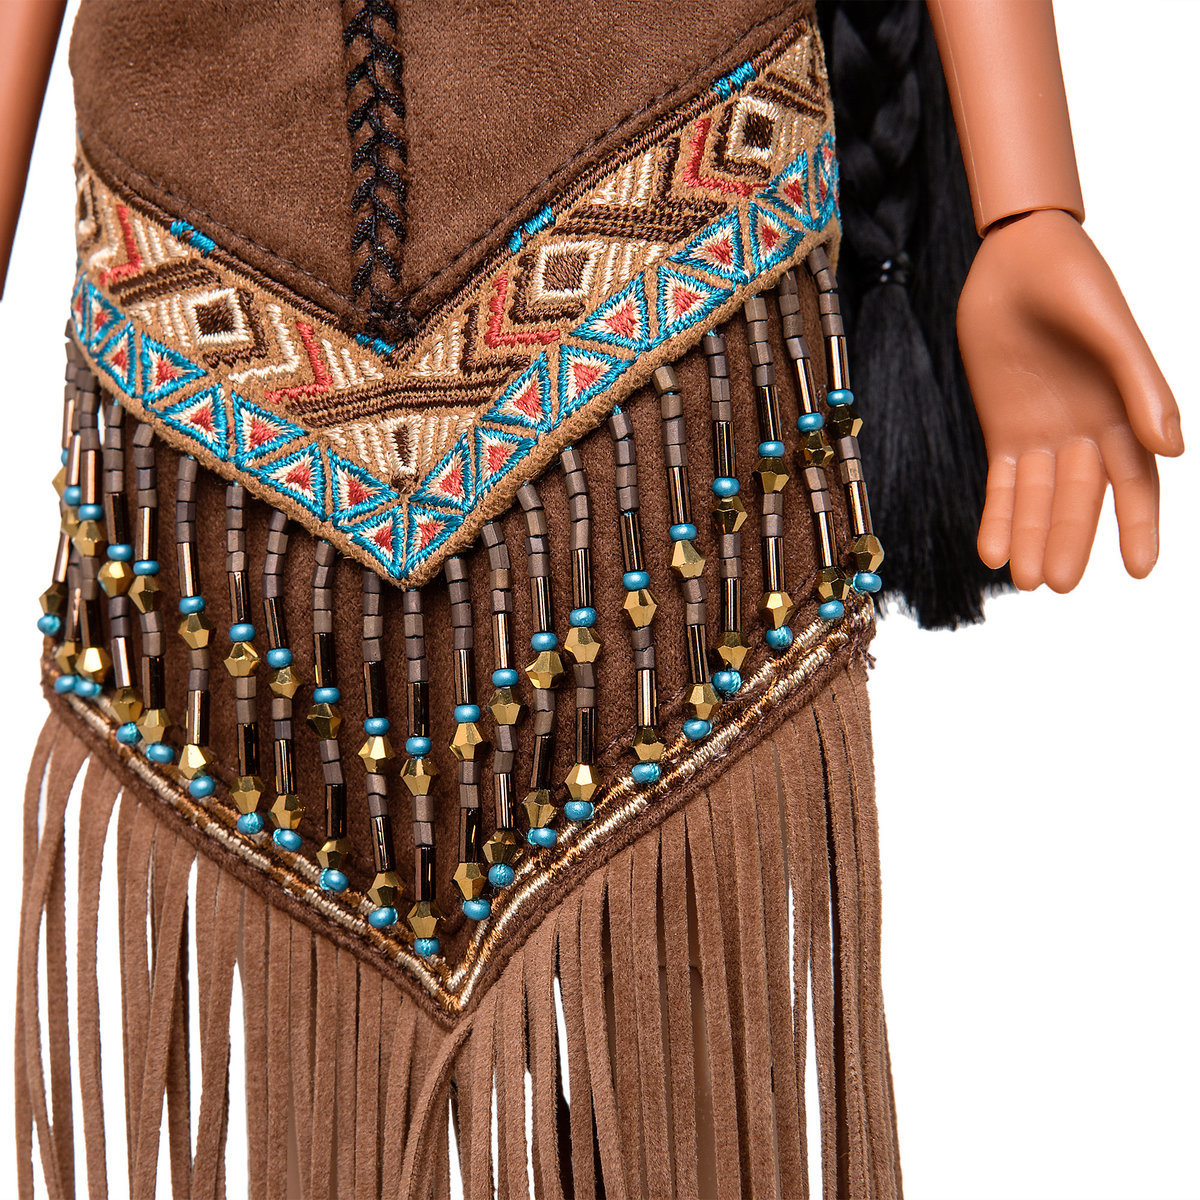 Disney S Pocahontas Limited Edition Doll Out Now